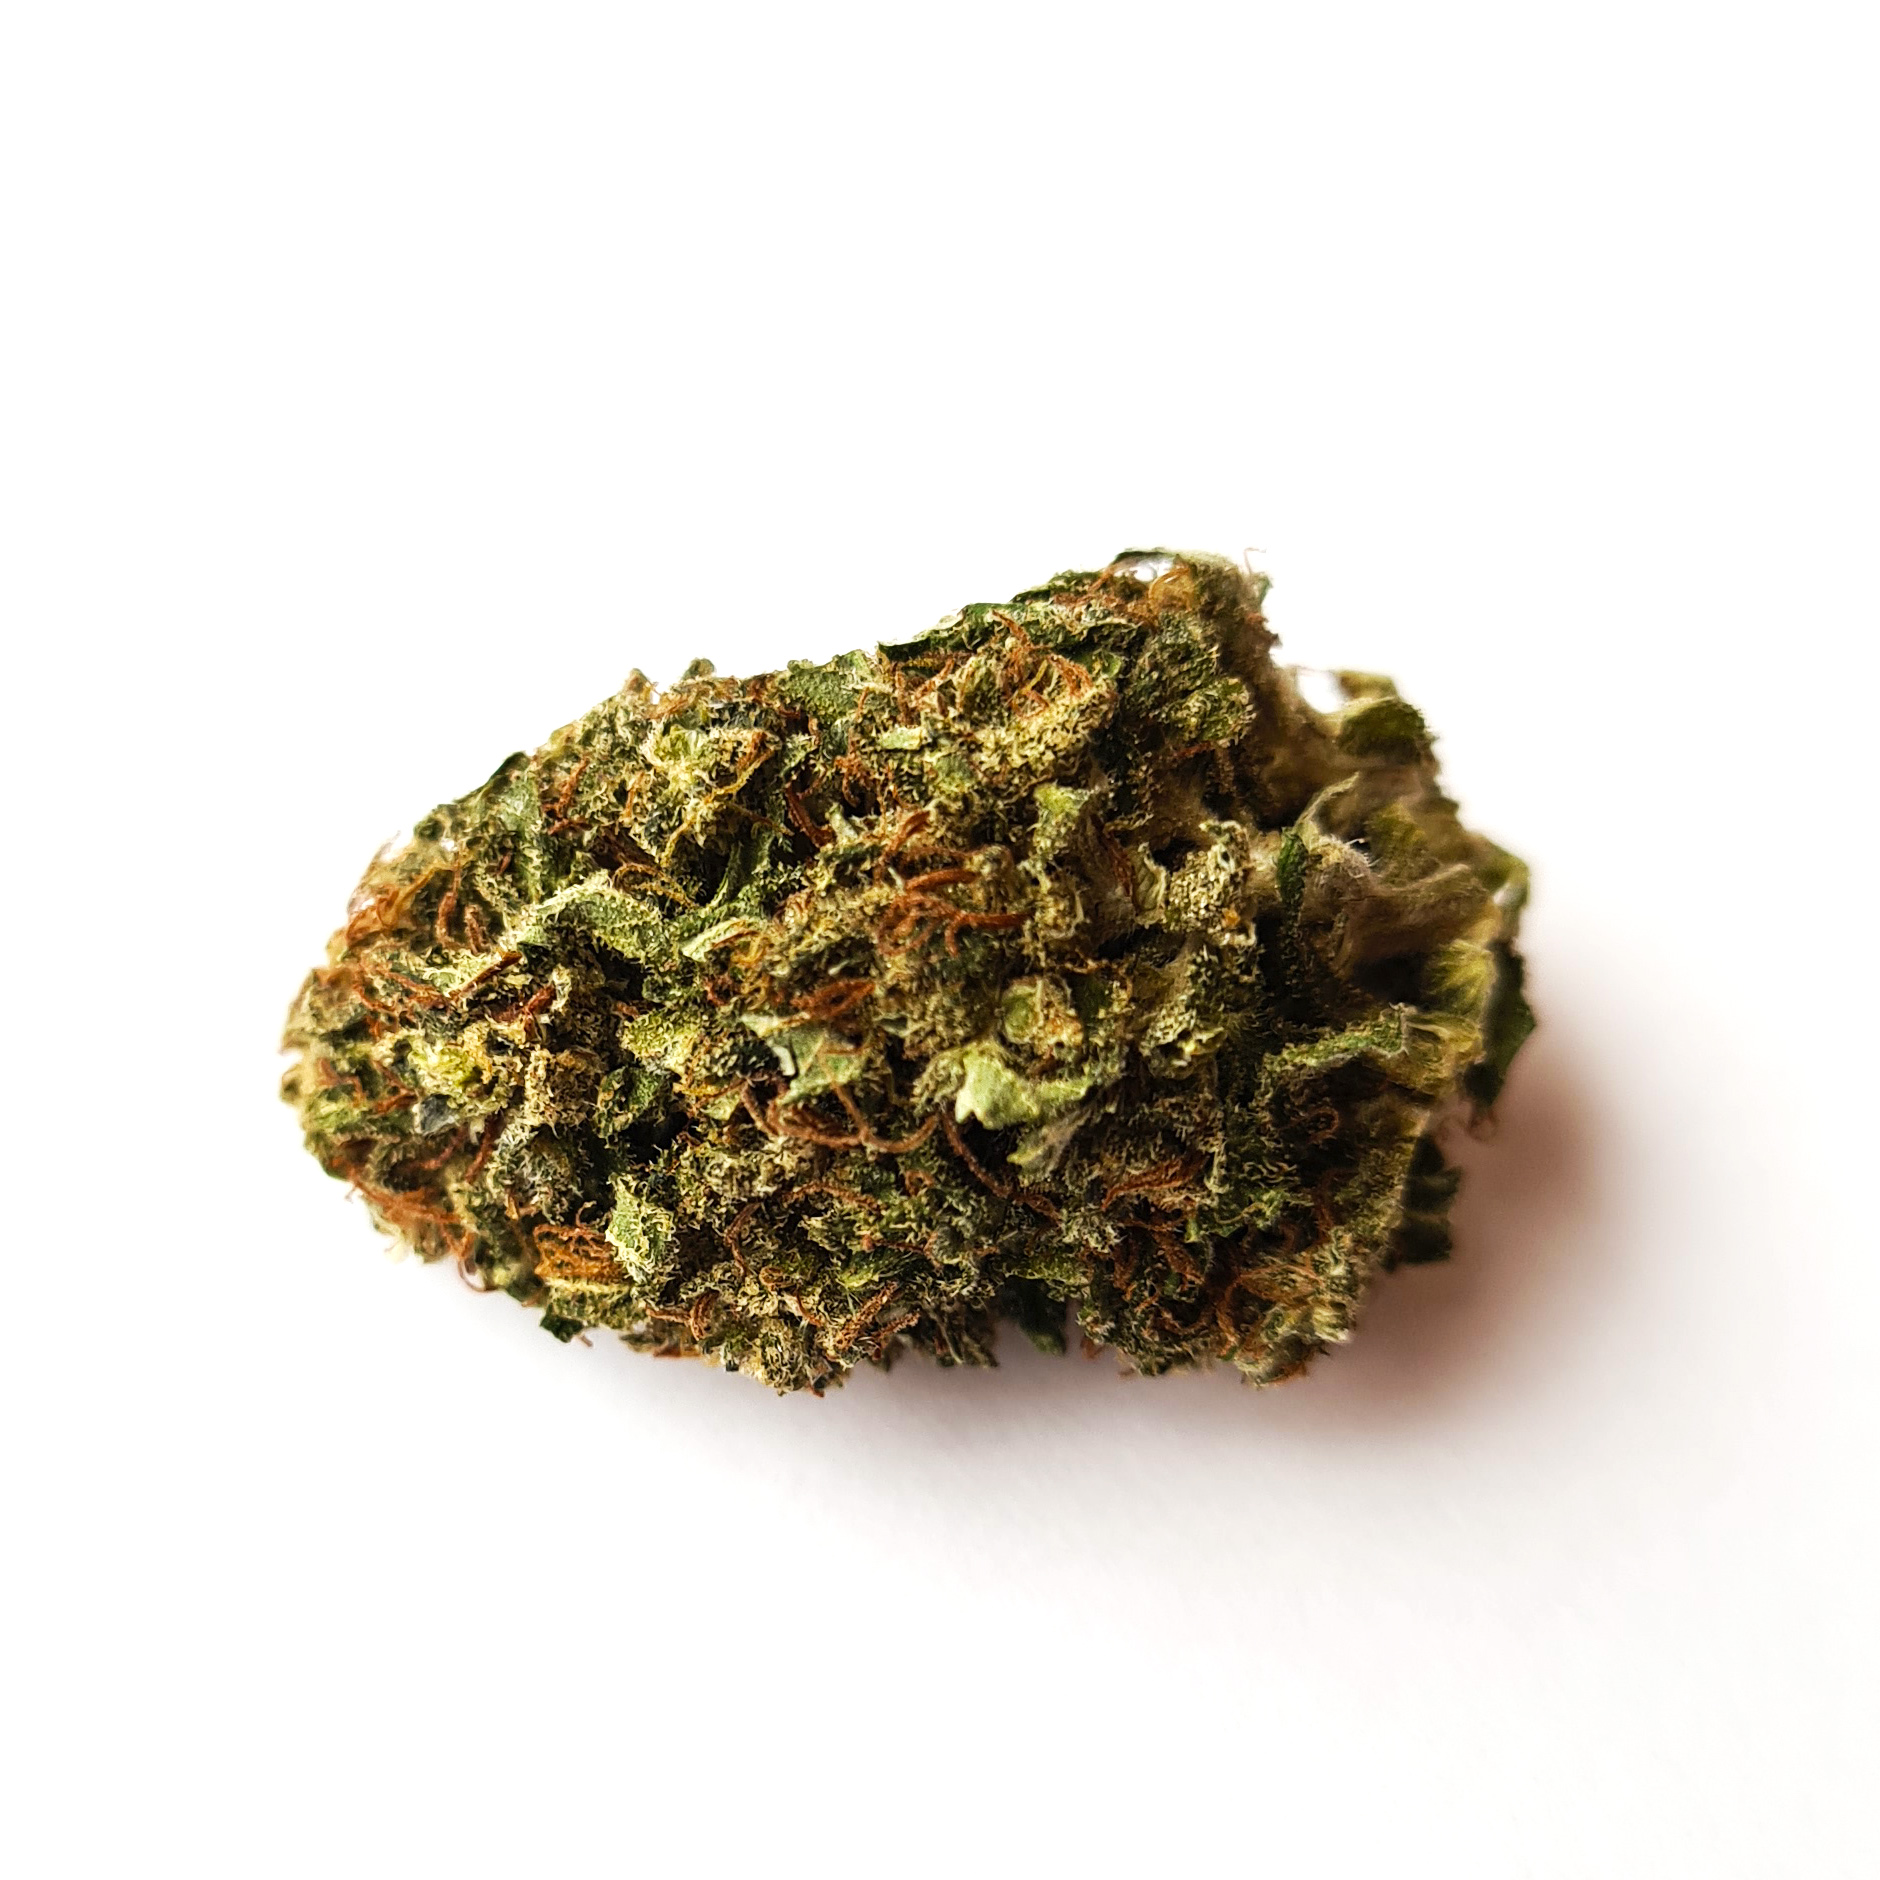 Cherry CBD från Cannabislight.se